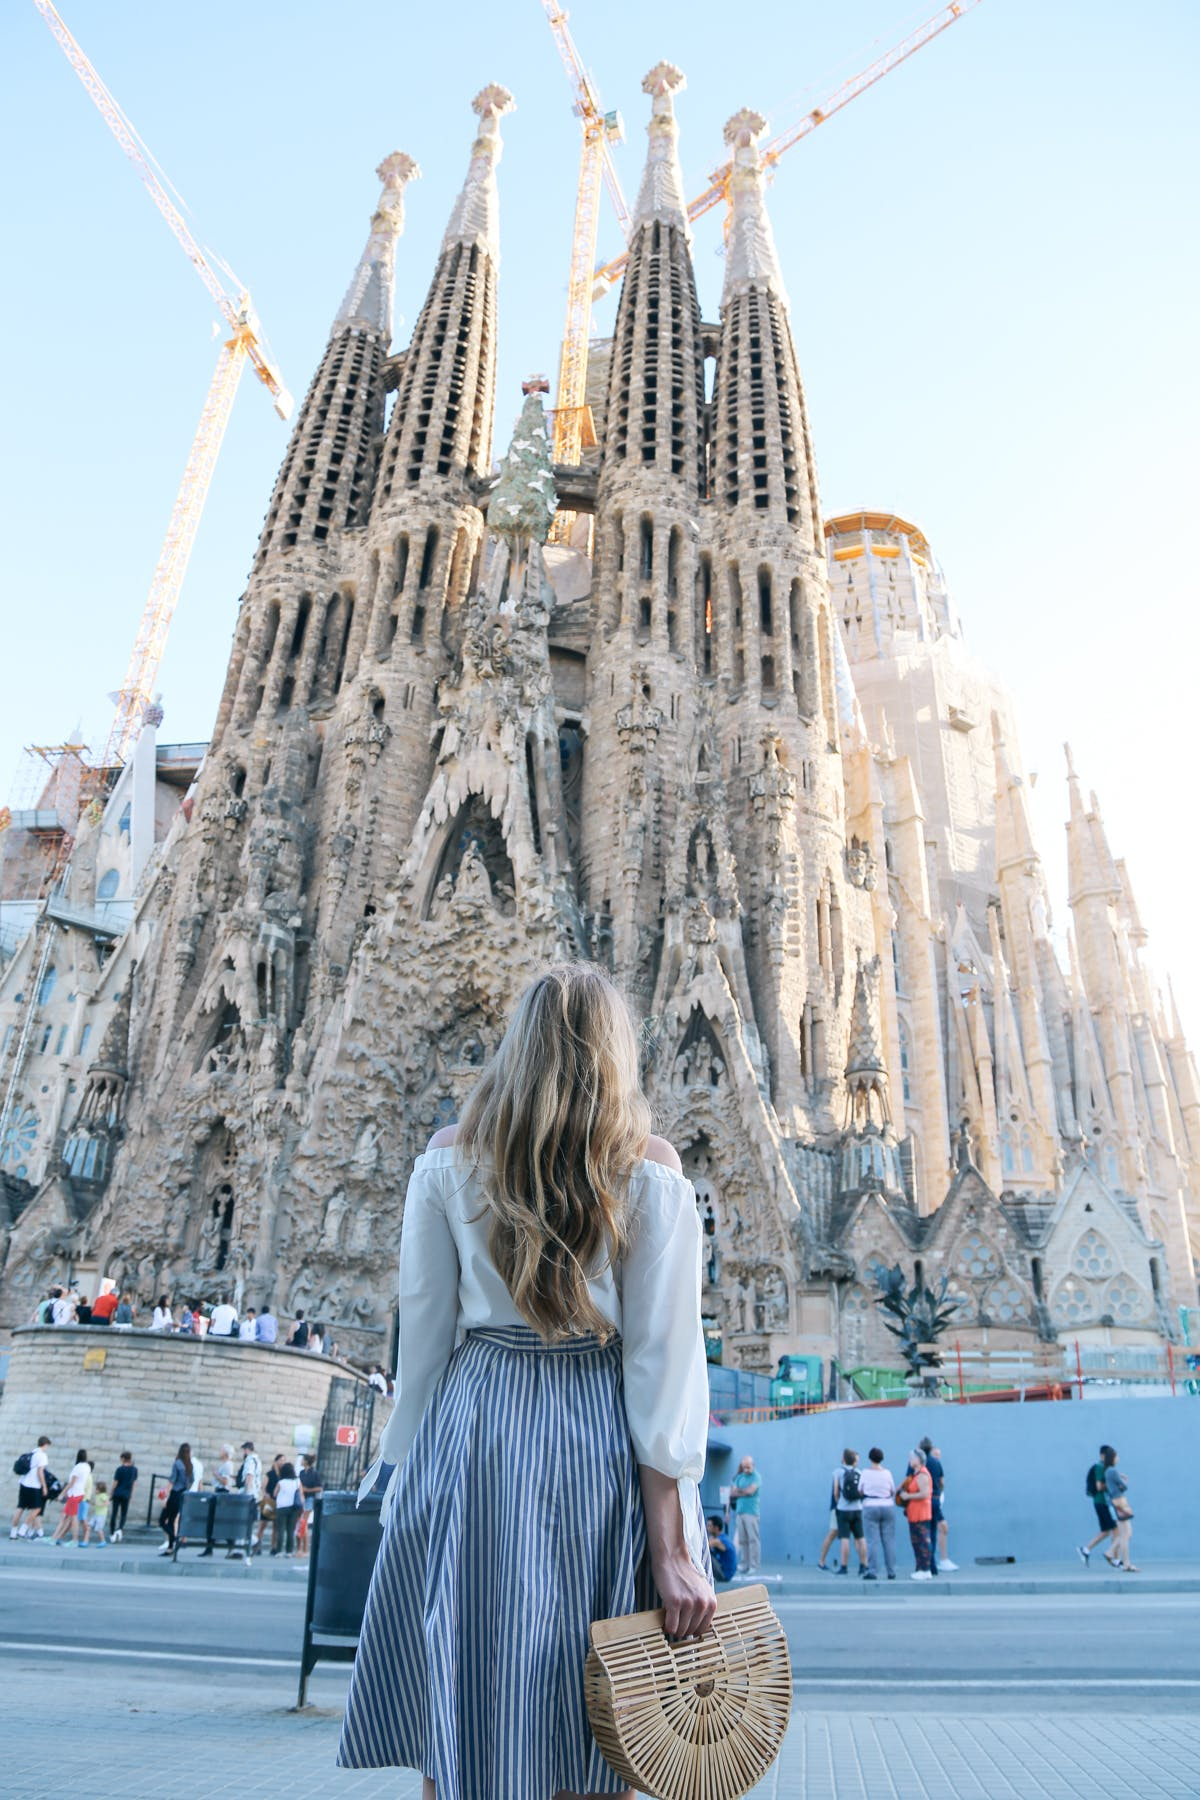 Sagrada Familia Travel Tips Dress Code